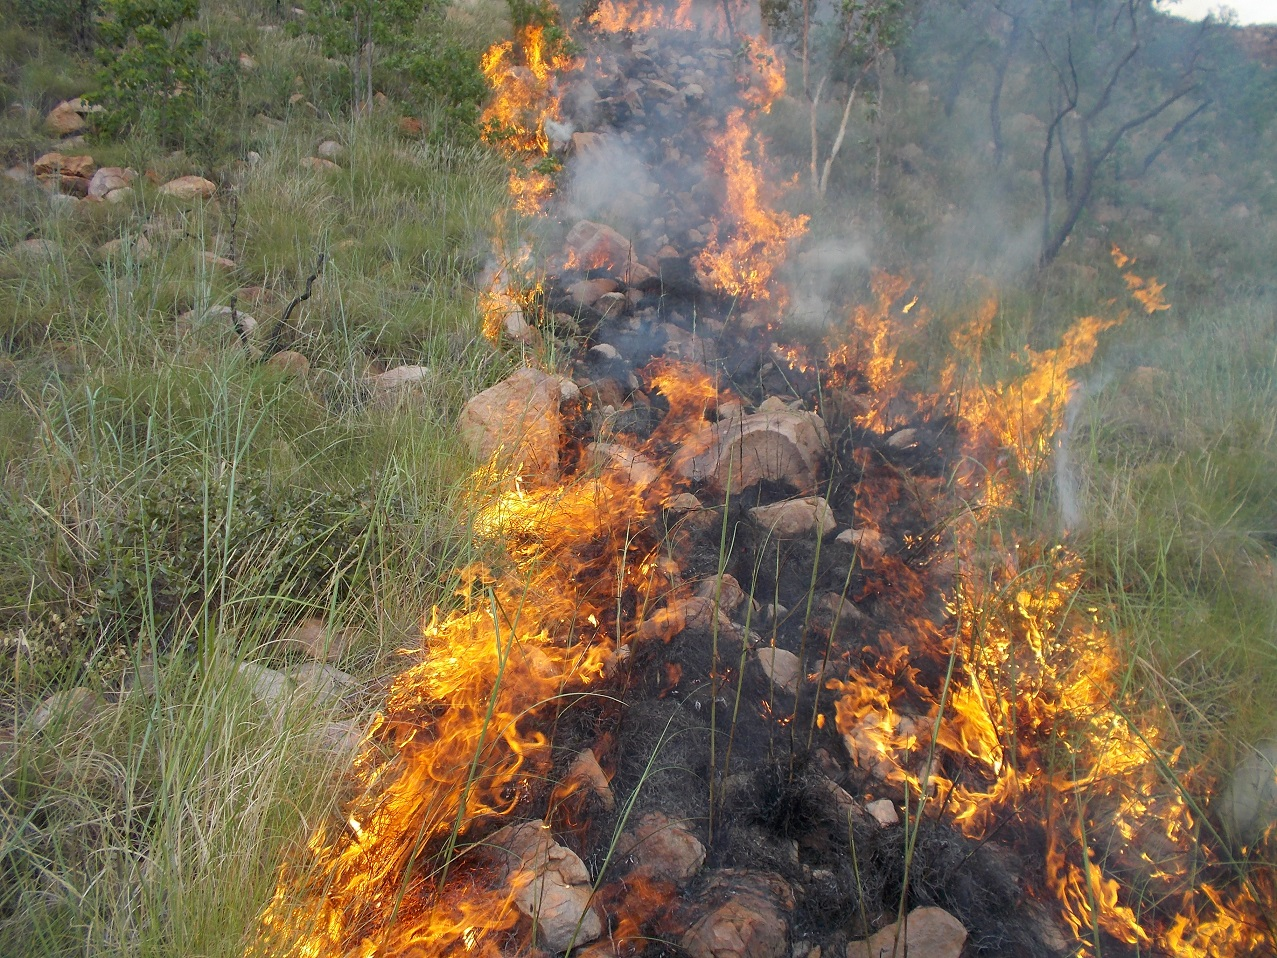 Spinifex nearly always burns. It is easier to control when it is wet